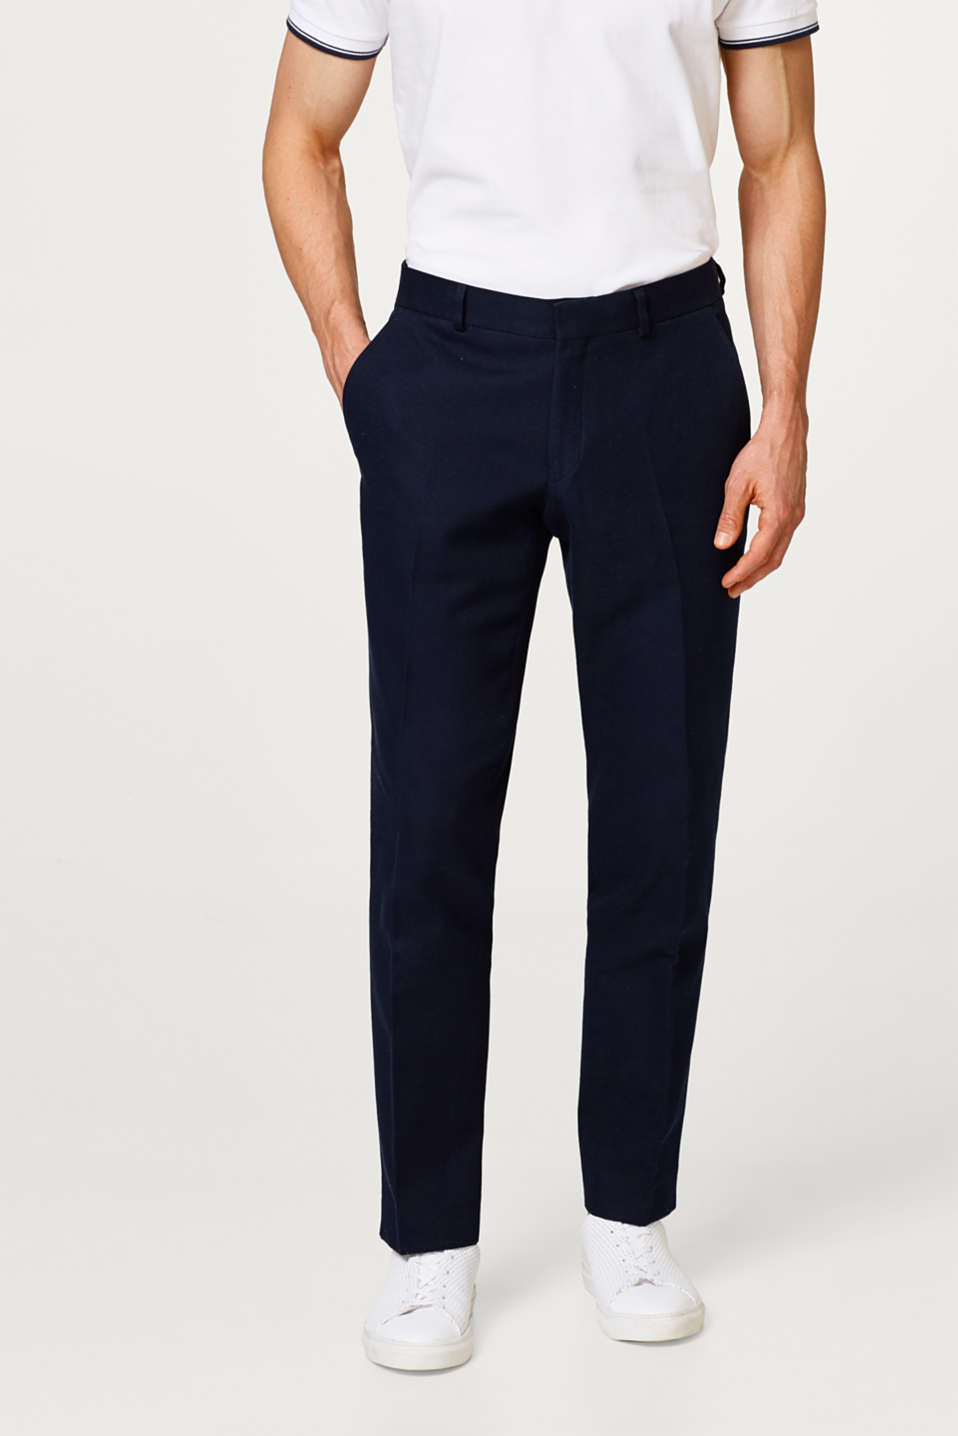 Esprit - Finely textured suit trousers in cotton